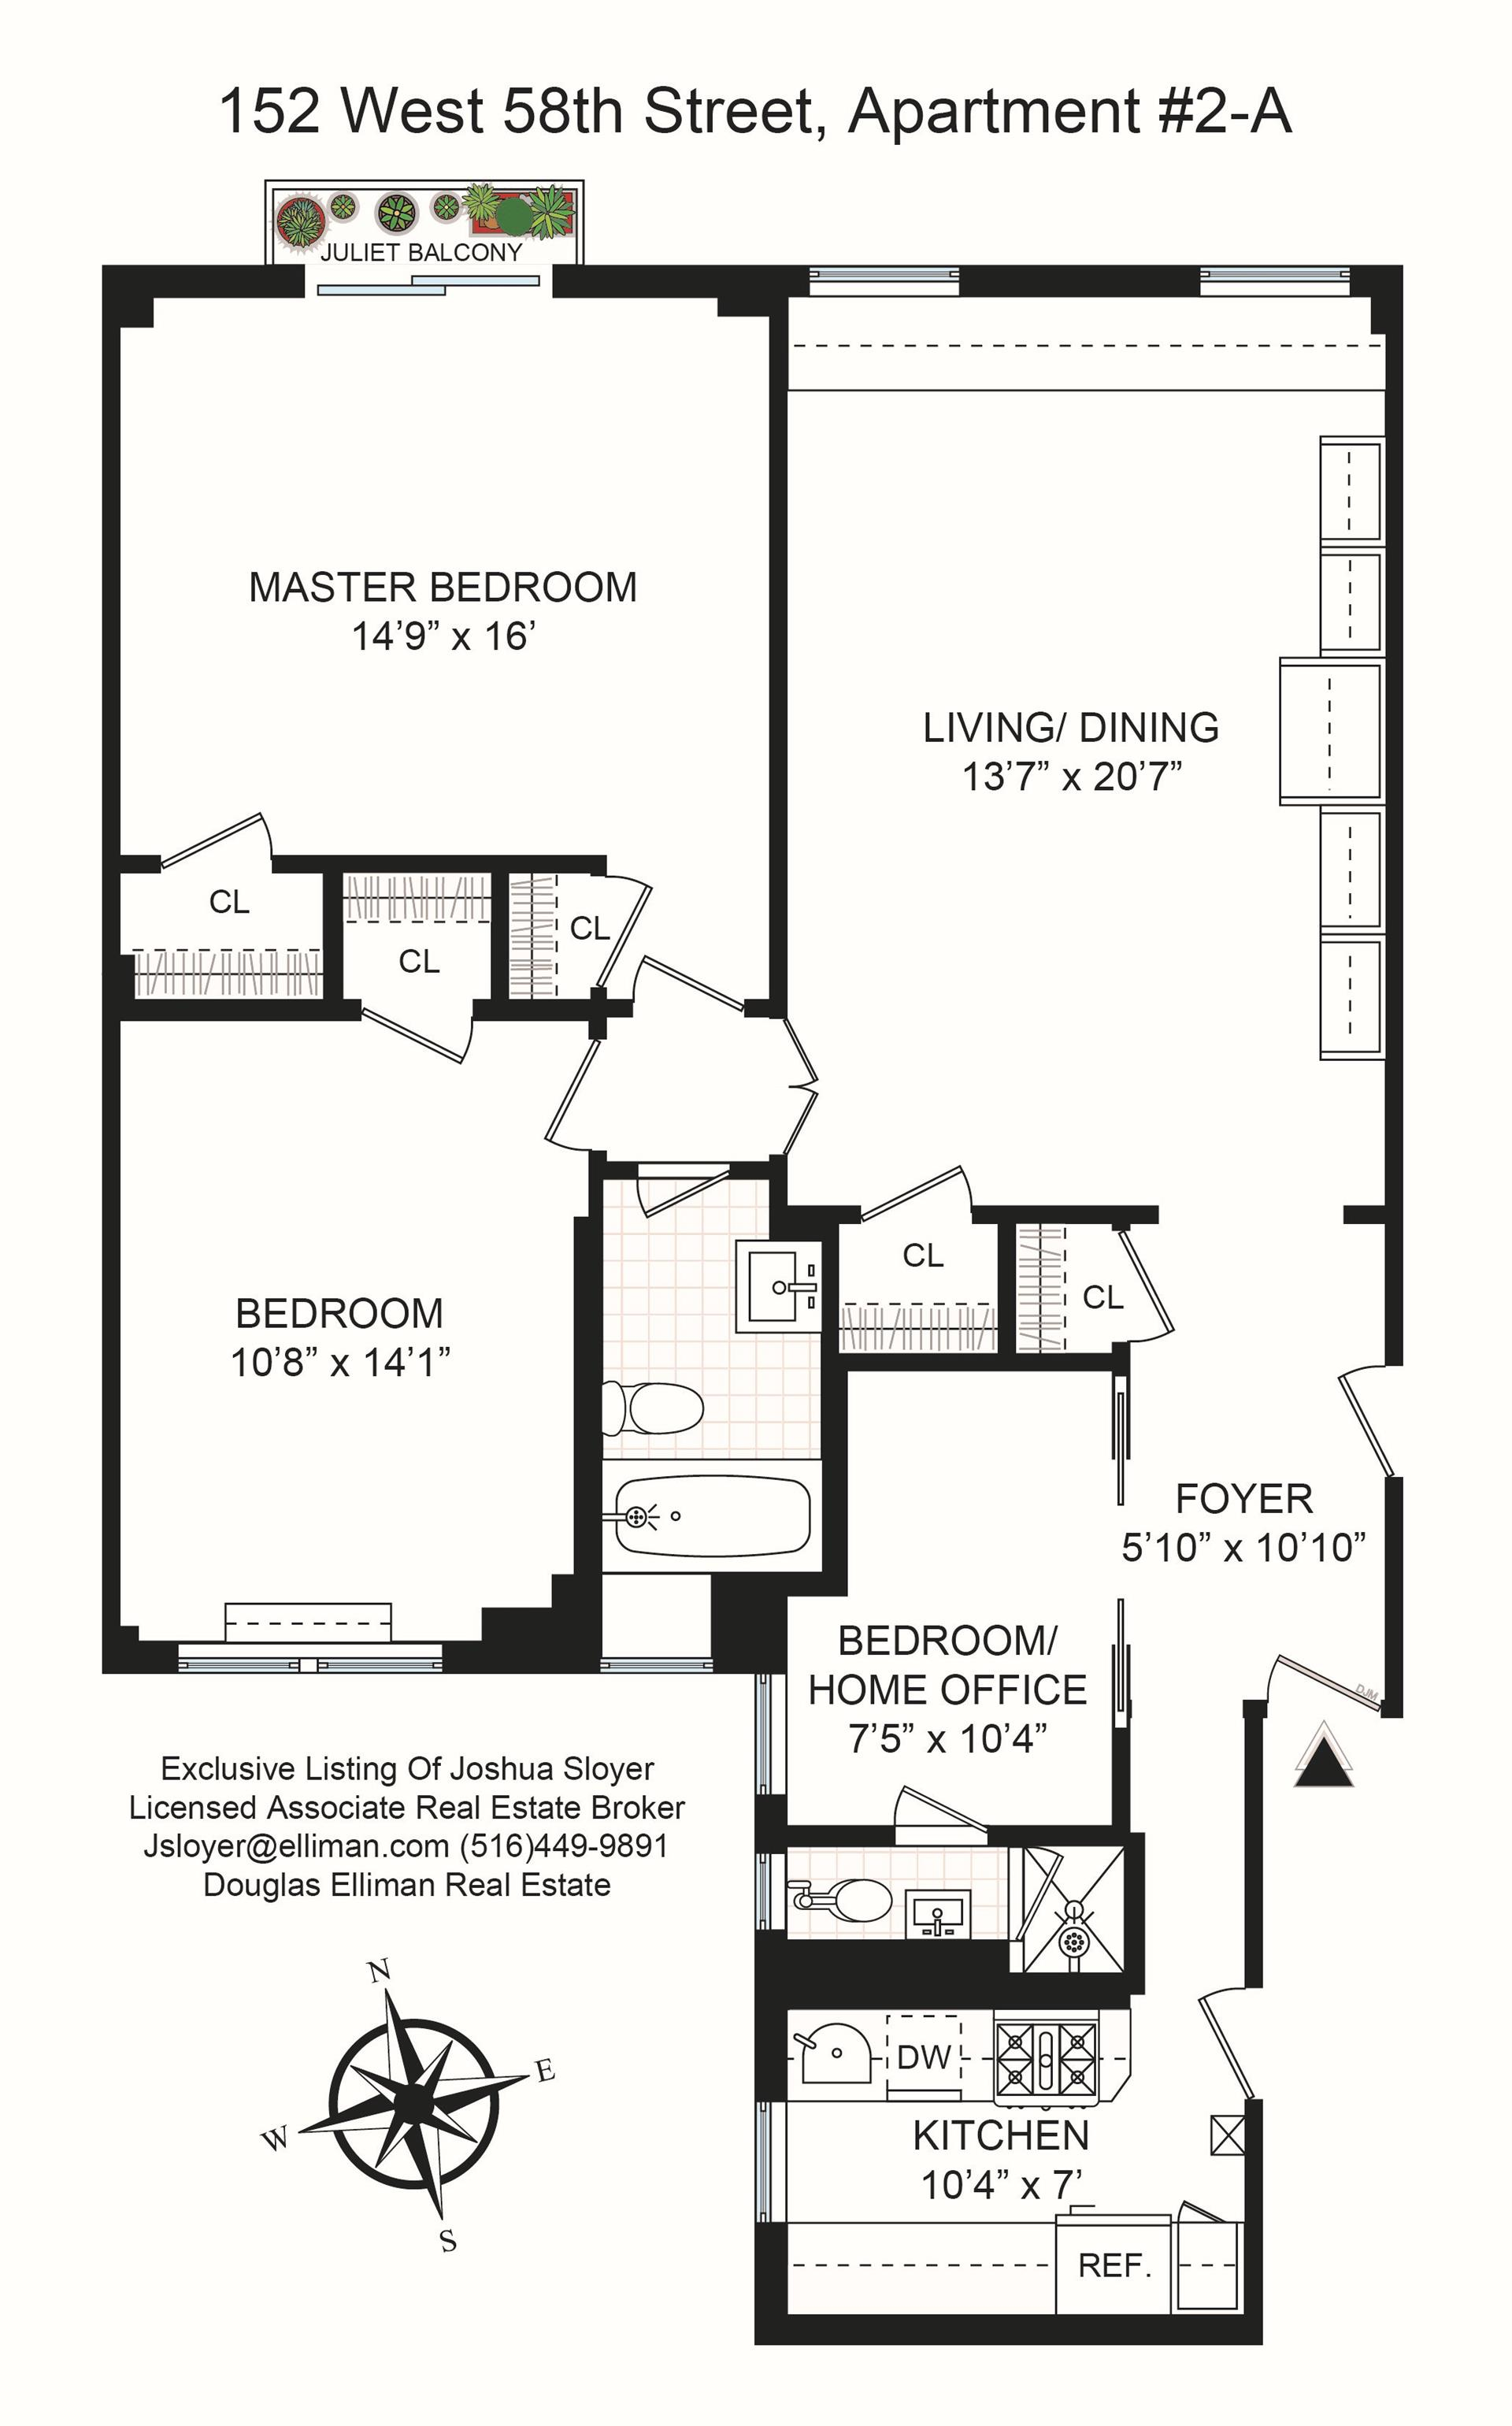 Floor plan of 152 W. 58TH STREET, 152 West 58th St, 2A - Midtown, New York